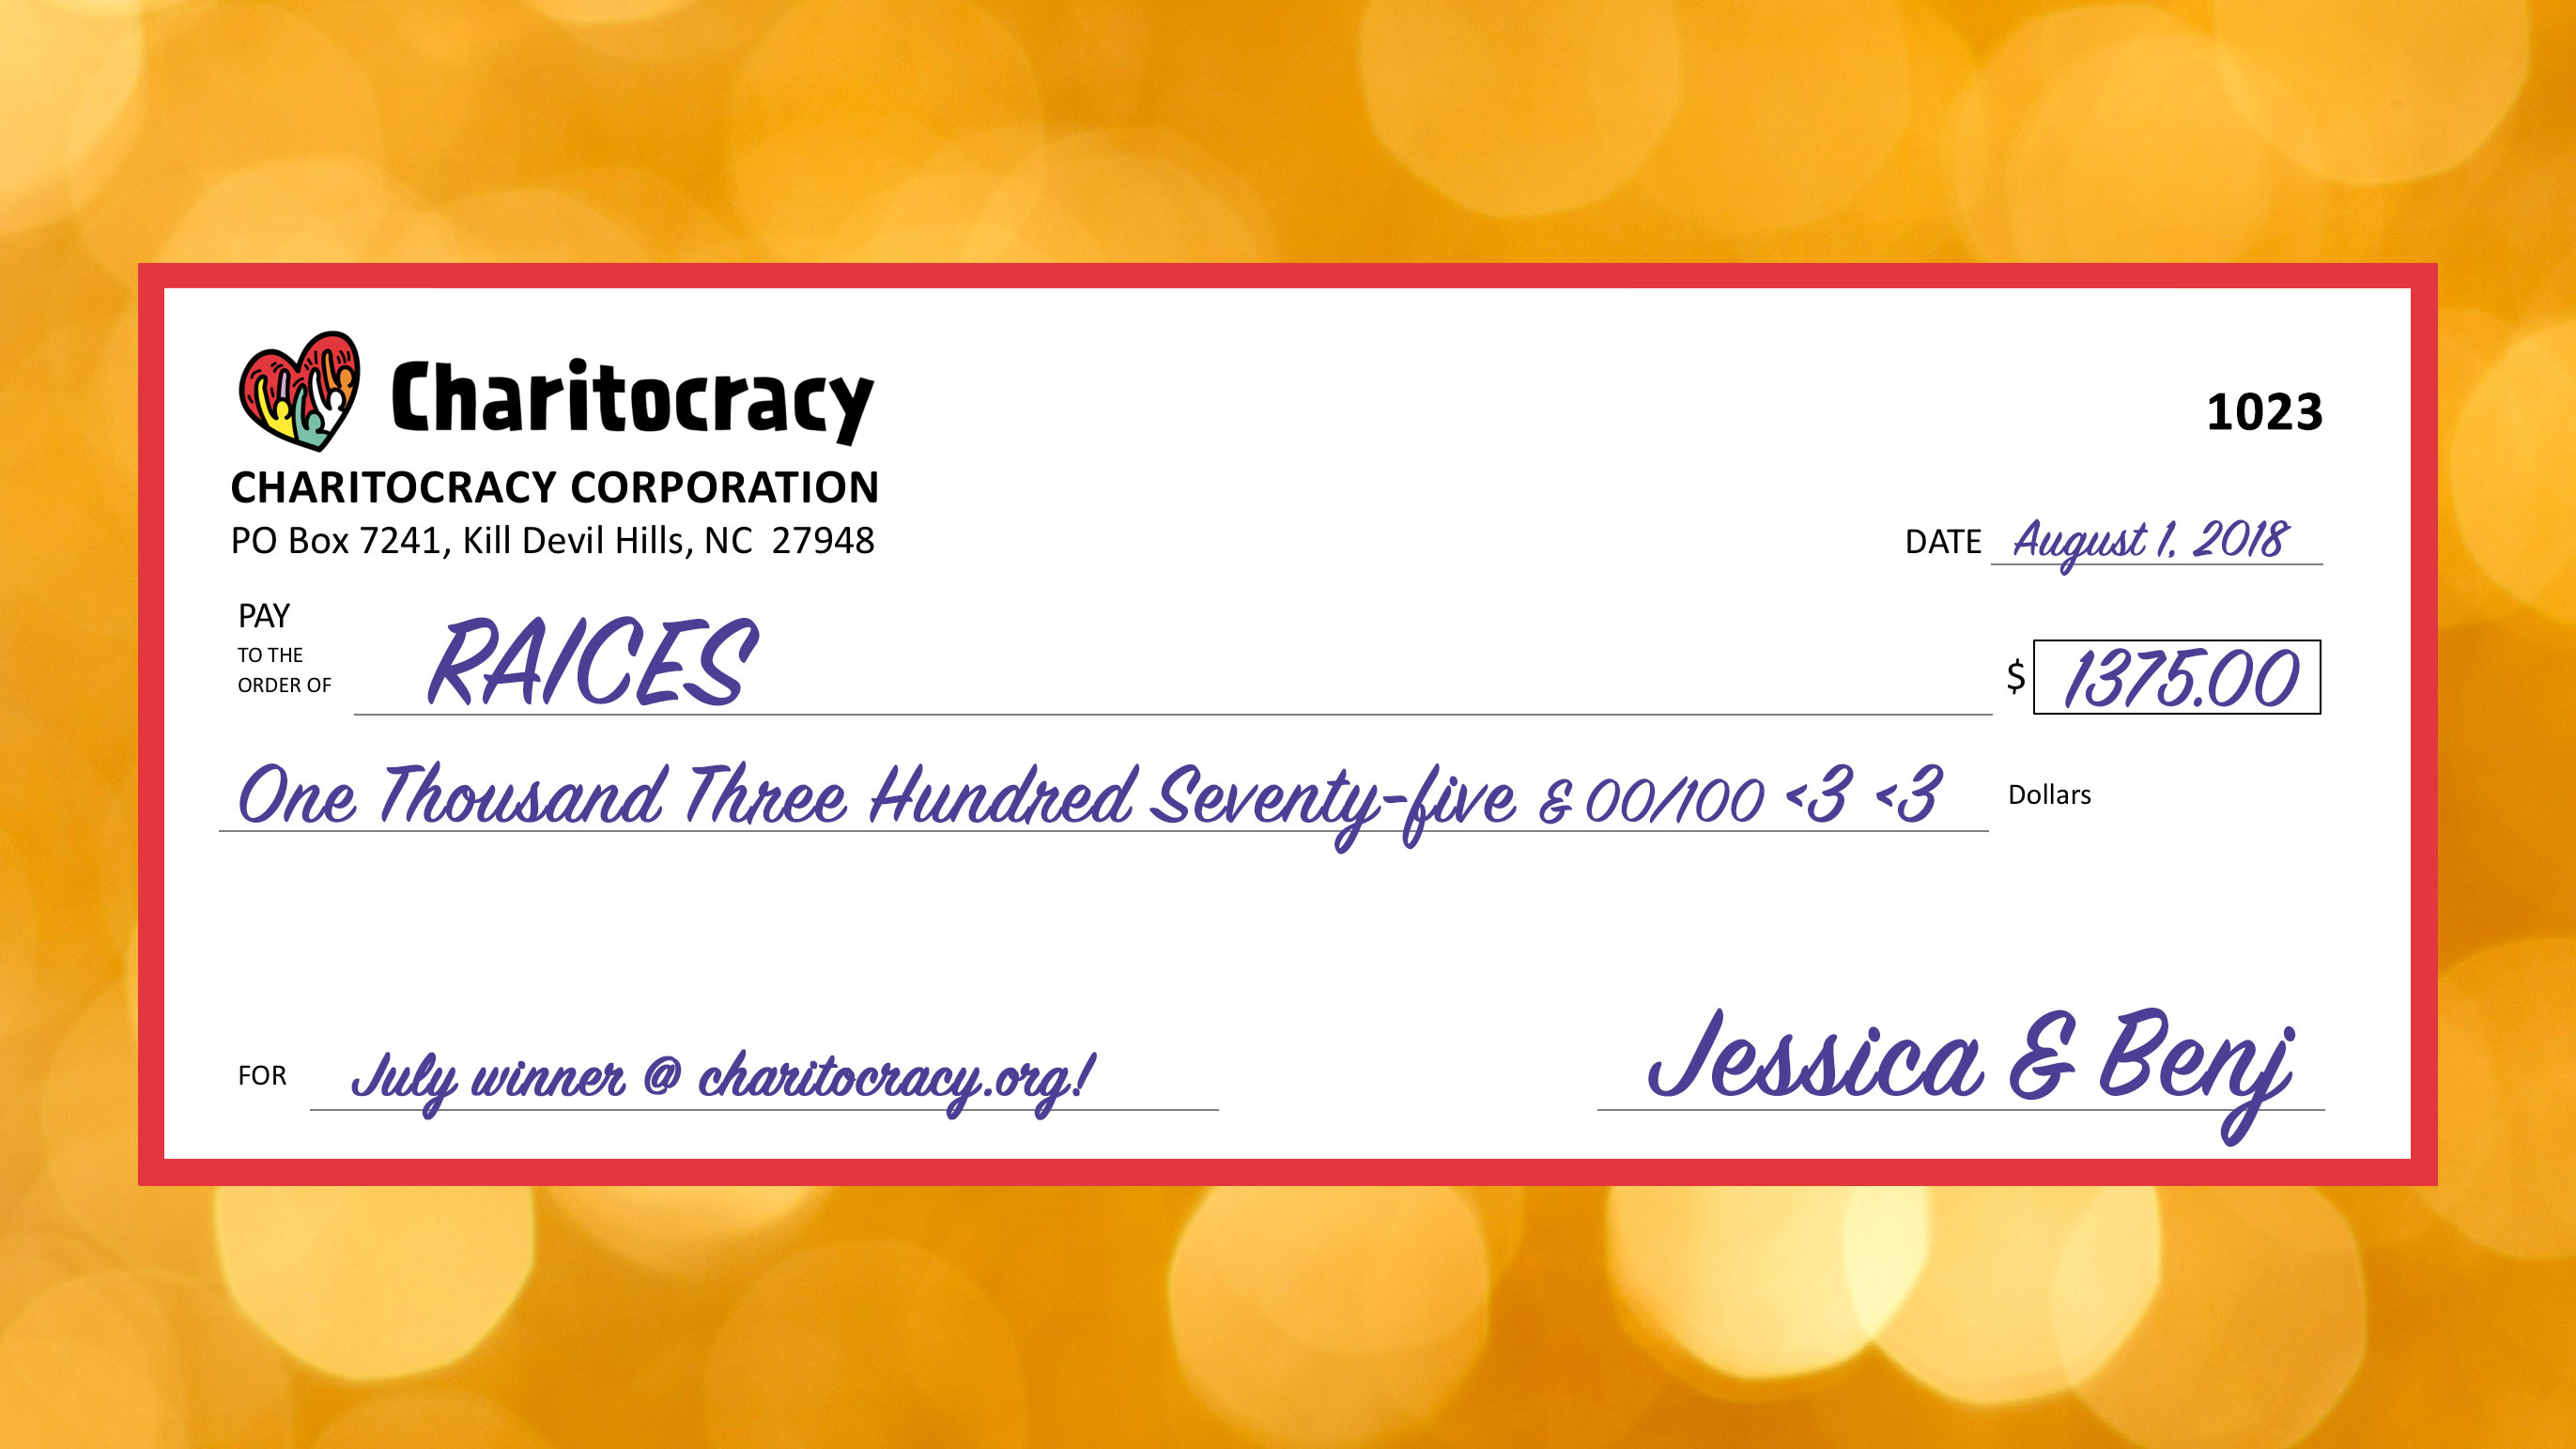 Charitocracy's 23rd check to July winner RAICES for $1375